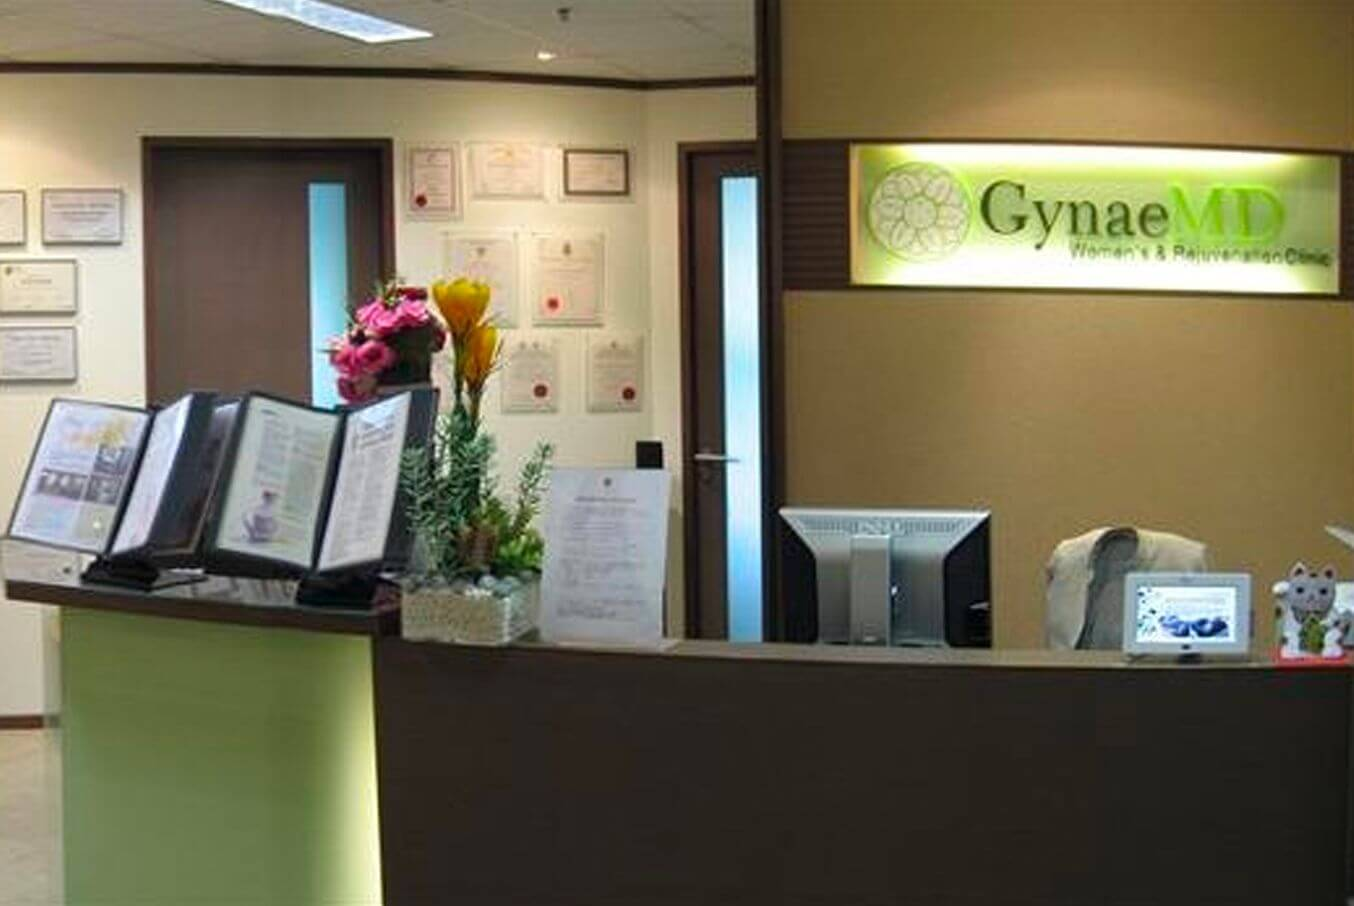 Our Clinic (Gynaemd Camden)